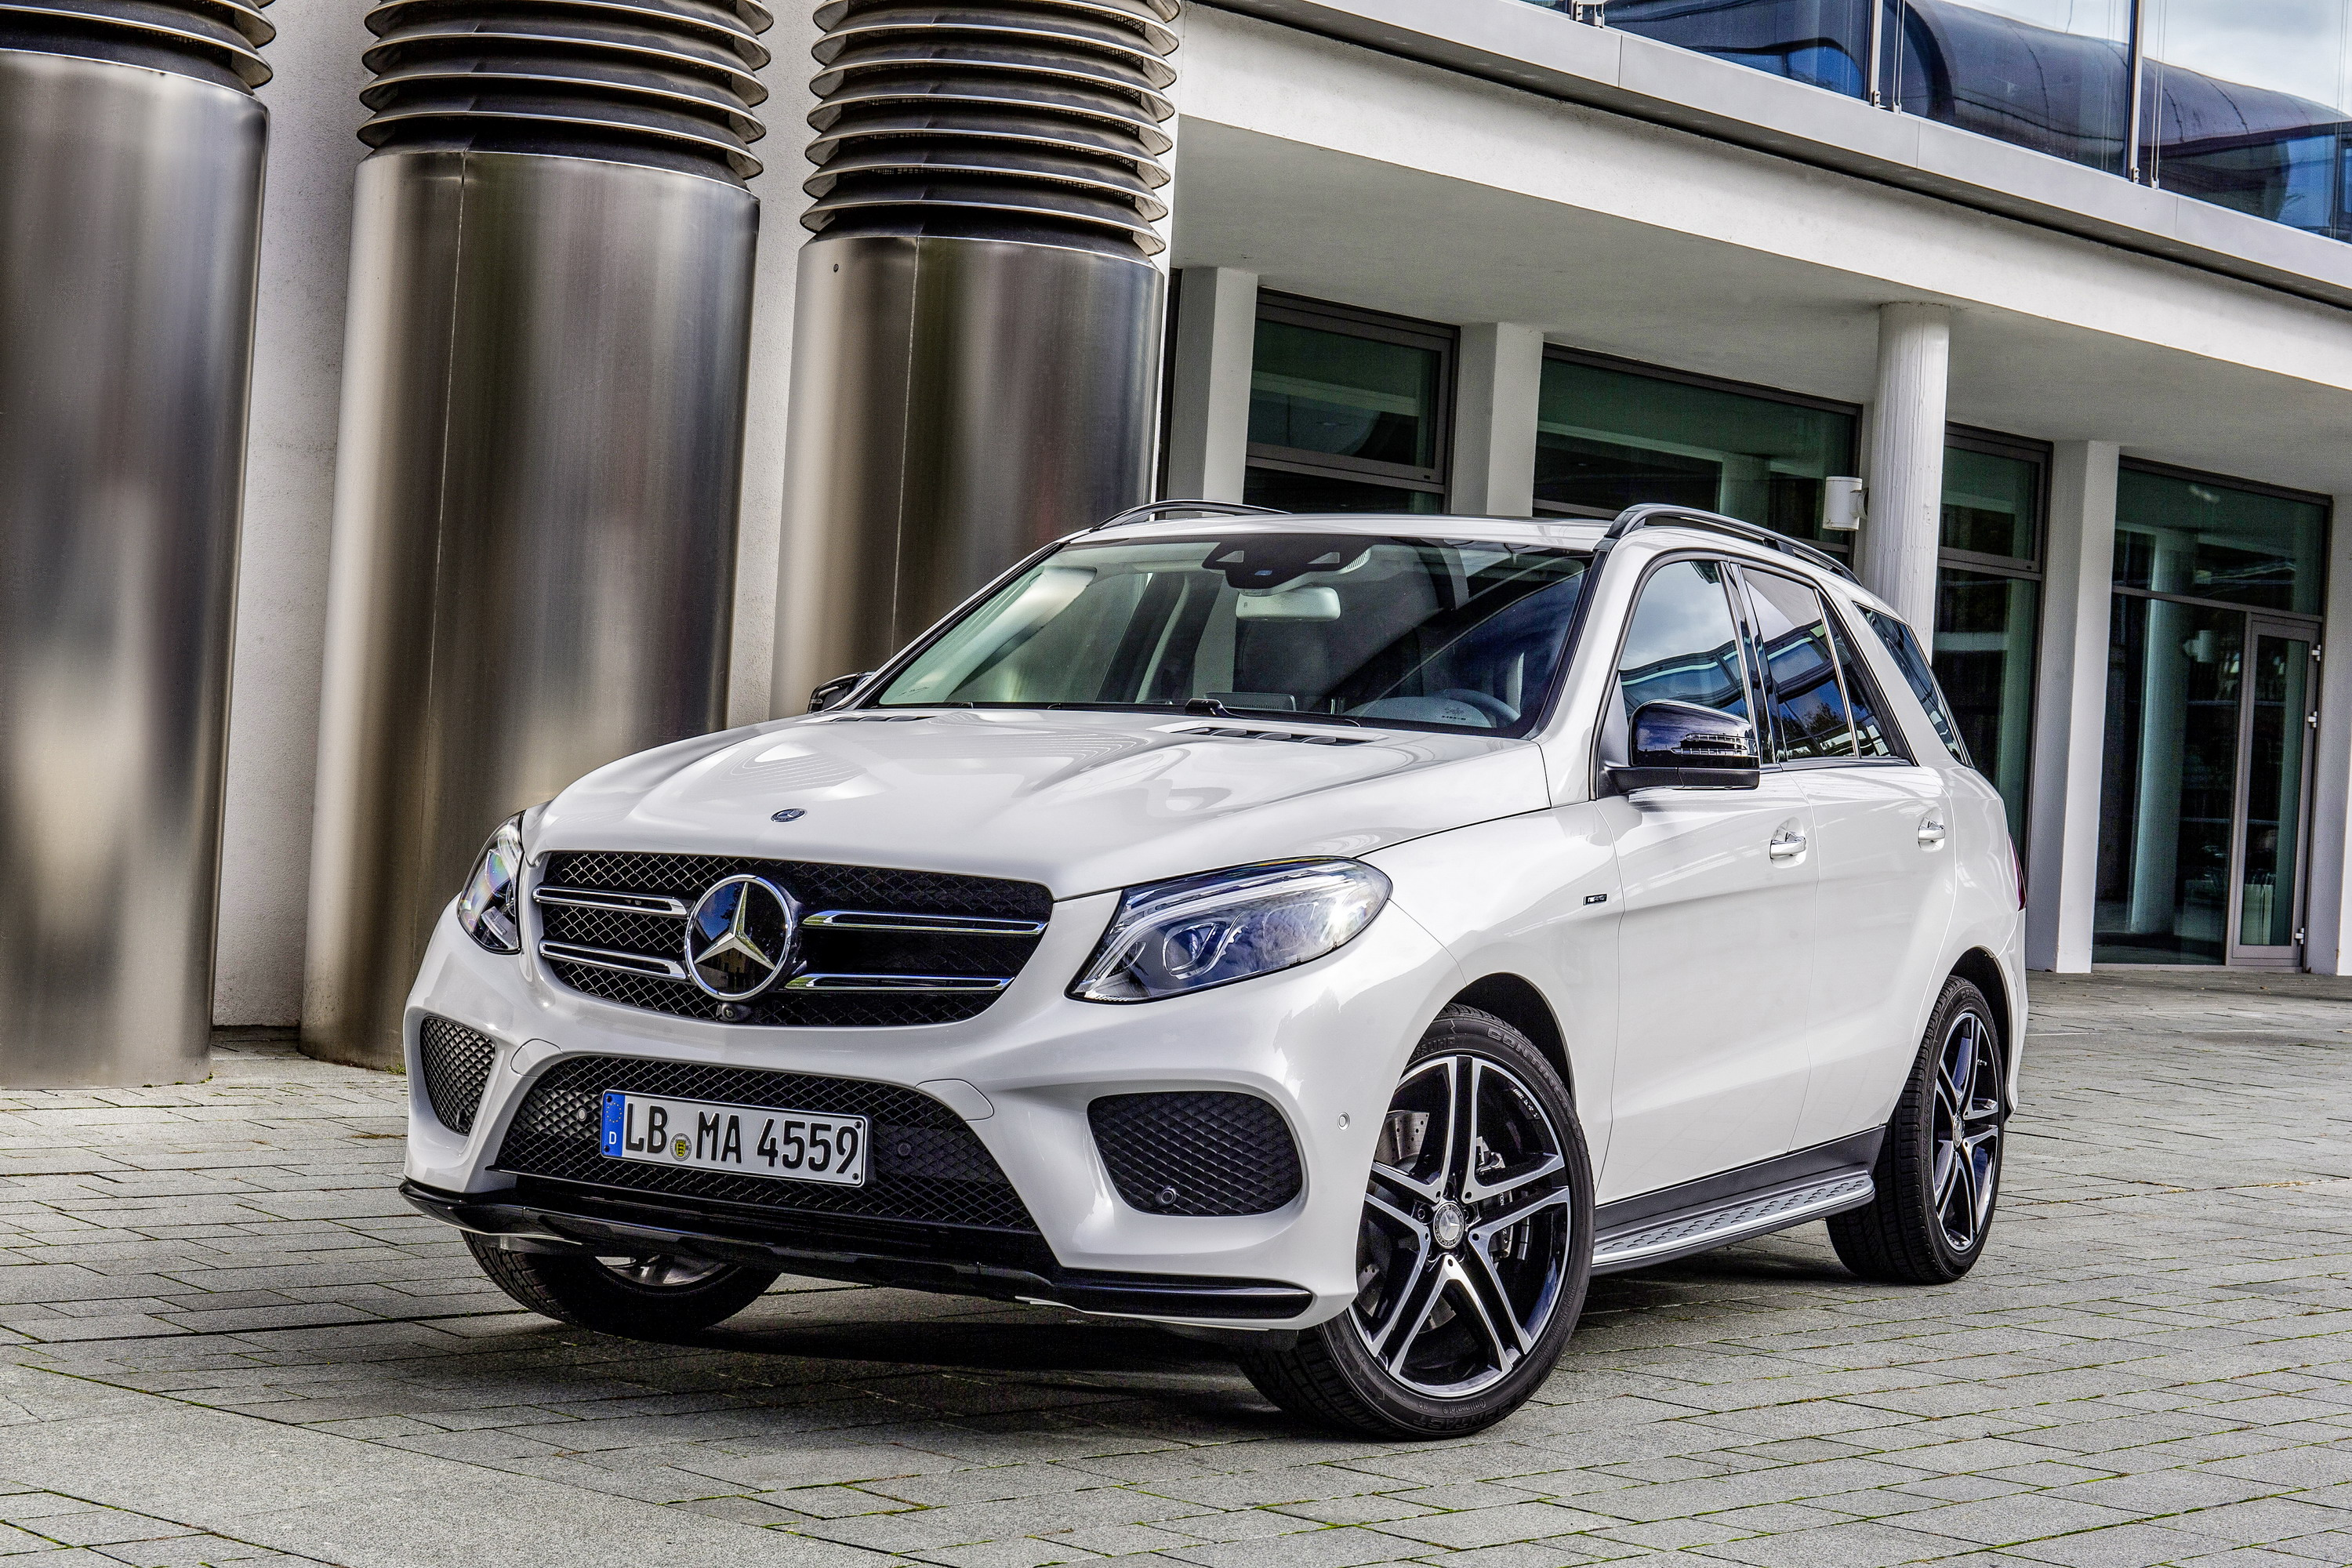 https://pictures.topspeed.com/IMG/jpg/201510/mercedes-benz-gle-45.jpg